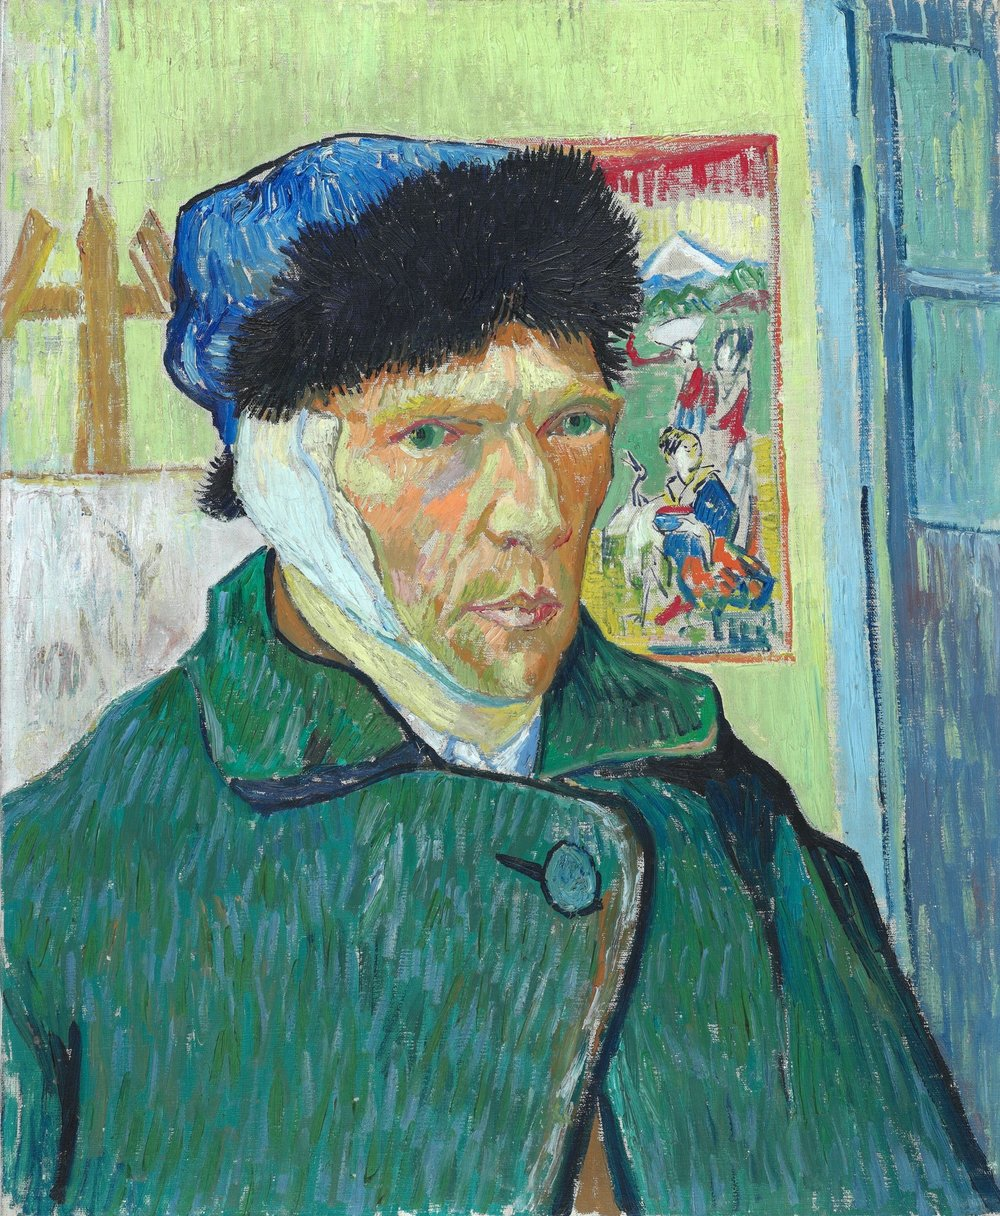 Vincent Van Gogh, 'Self-portrait with Bandaged Ear,' 1889